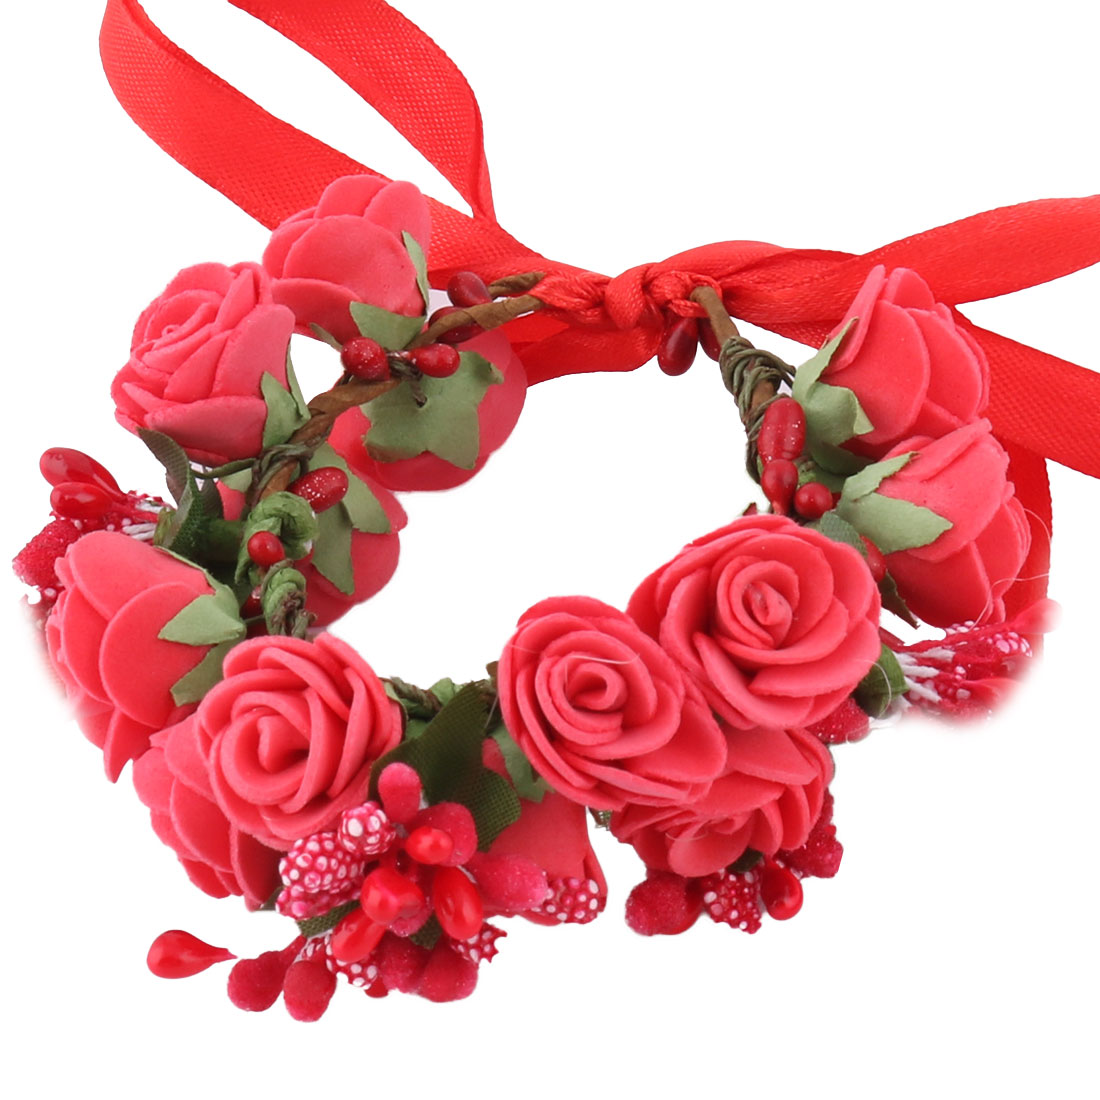 Bride Wedding Foam Double Layer Artificial Wrist Flower Craft DIY Decor Red